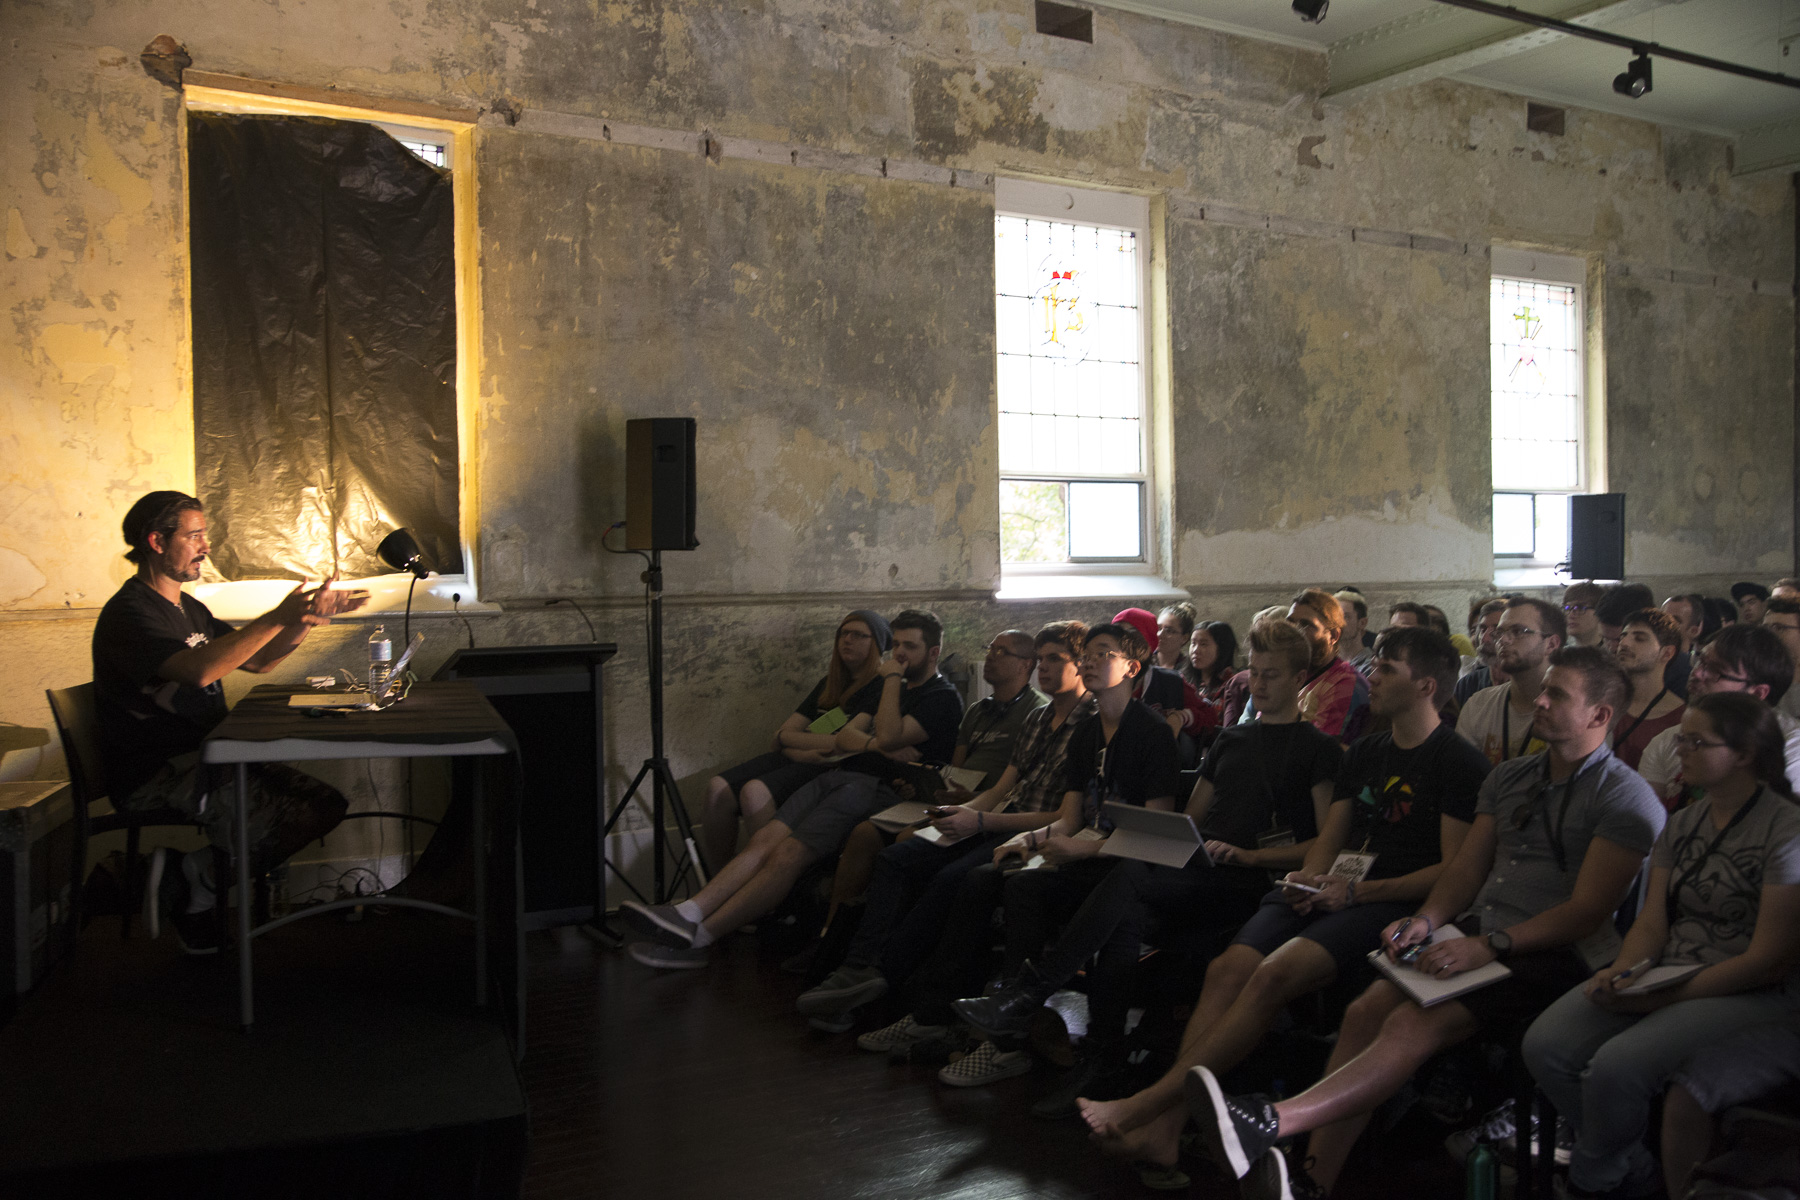 Alex Alvarez Gives A Presentation In The Abbotsford Convent At Gnomon Live Australia Melbourne 2016